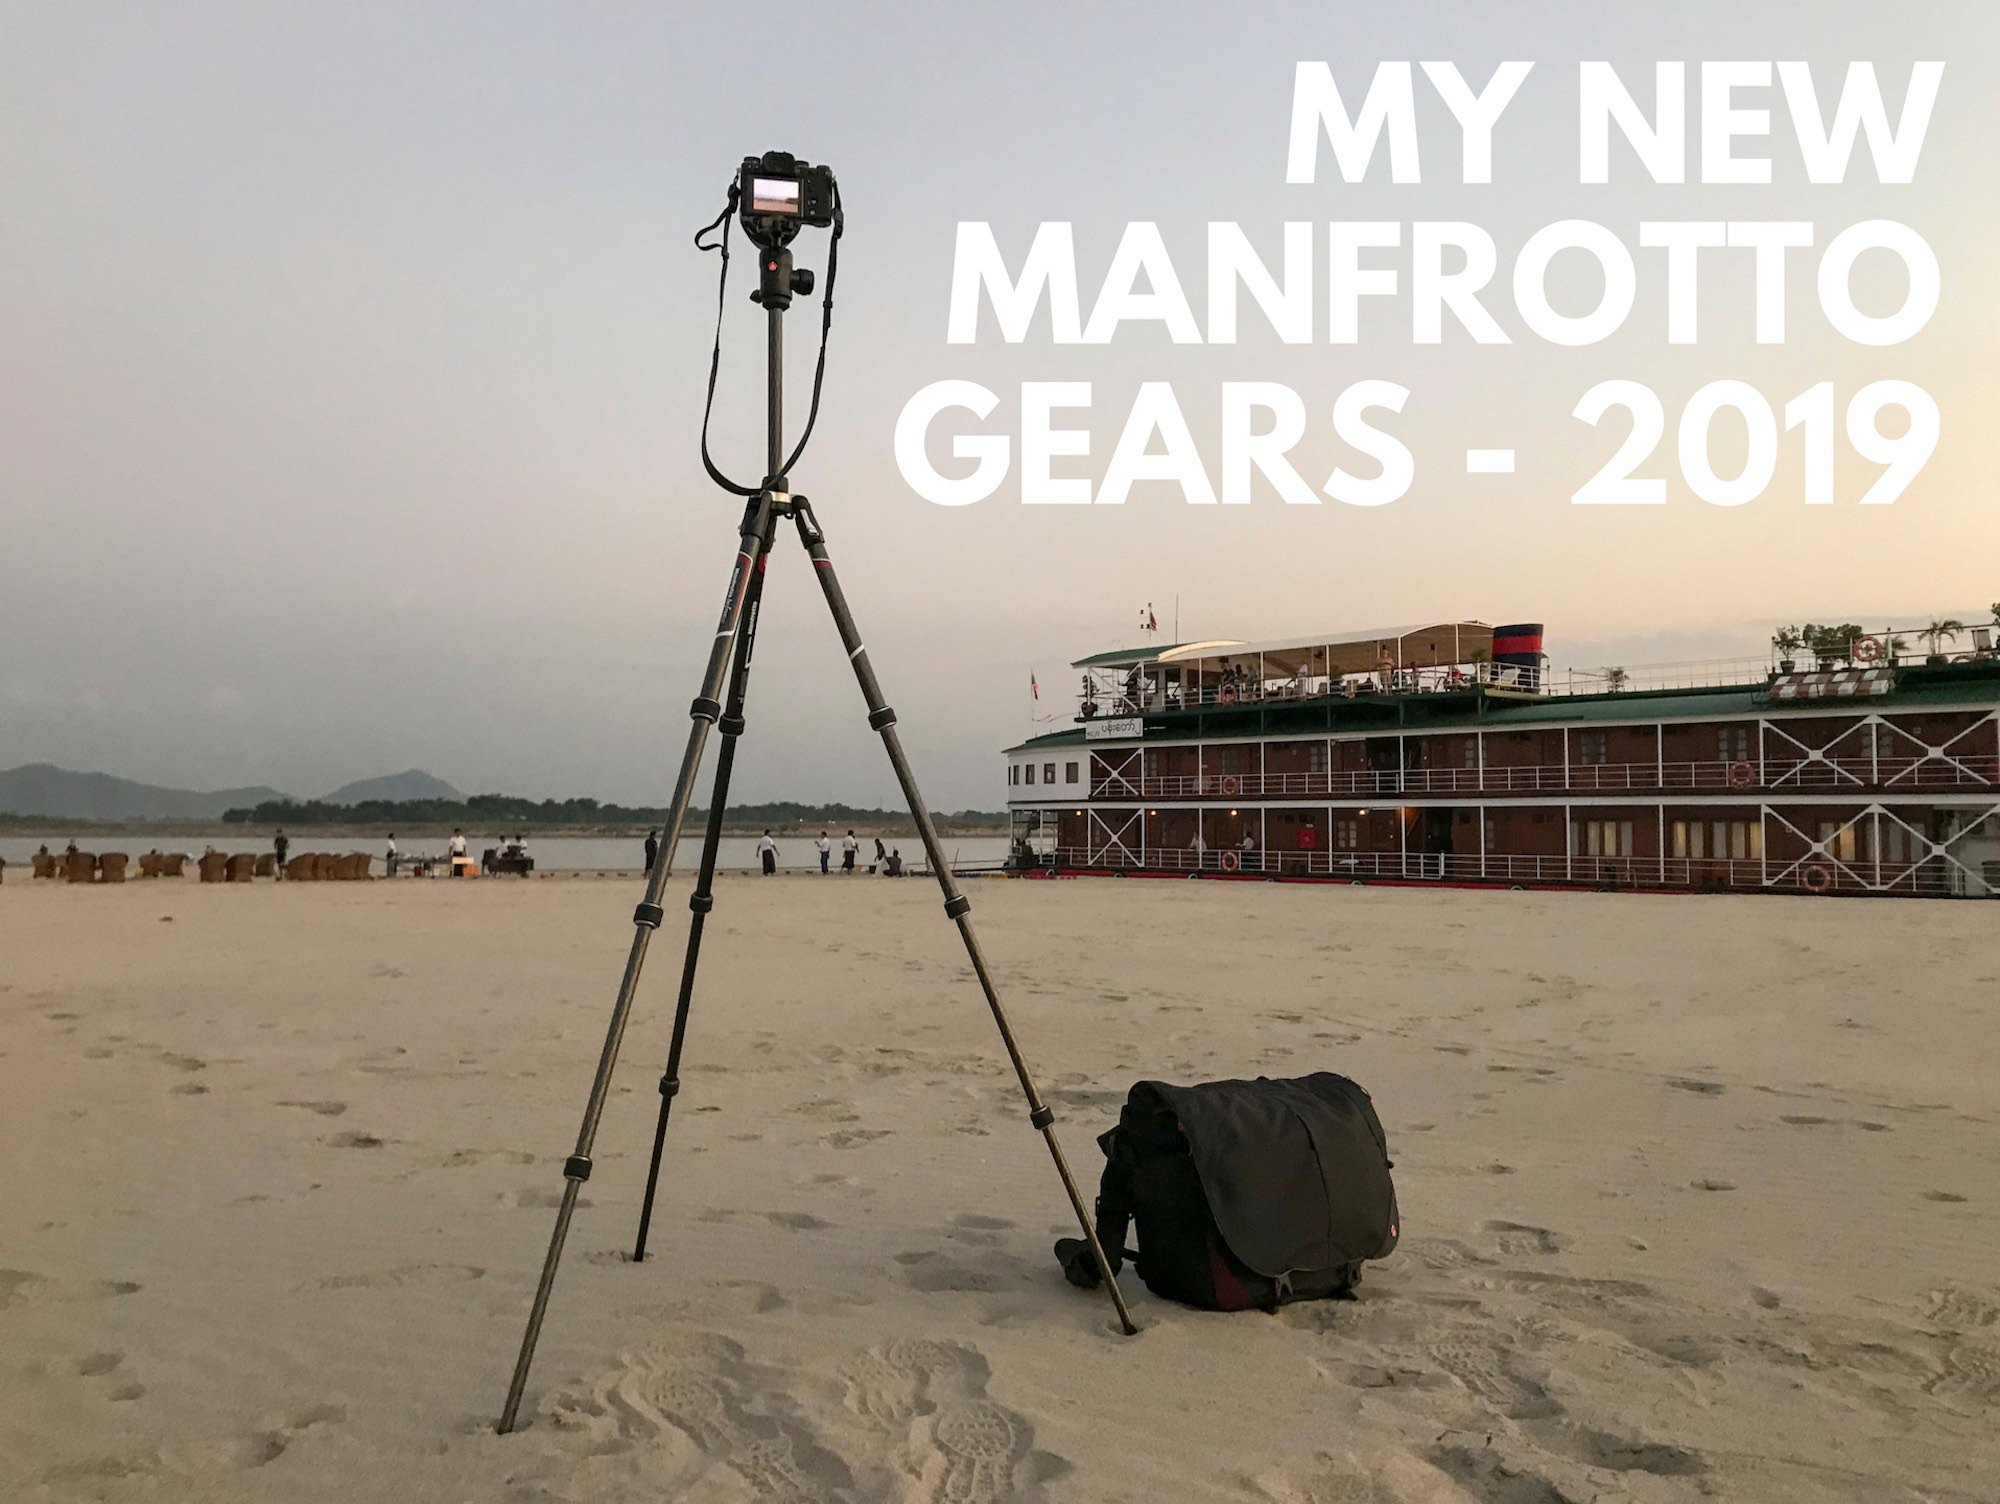 Manfrotto gears jose jeuland photographer tripod camera bag